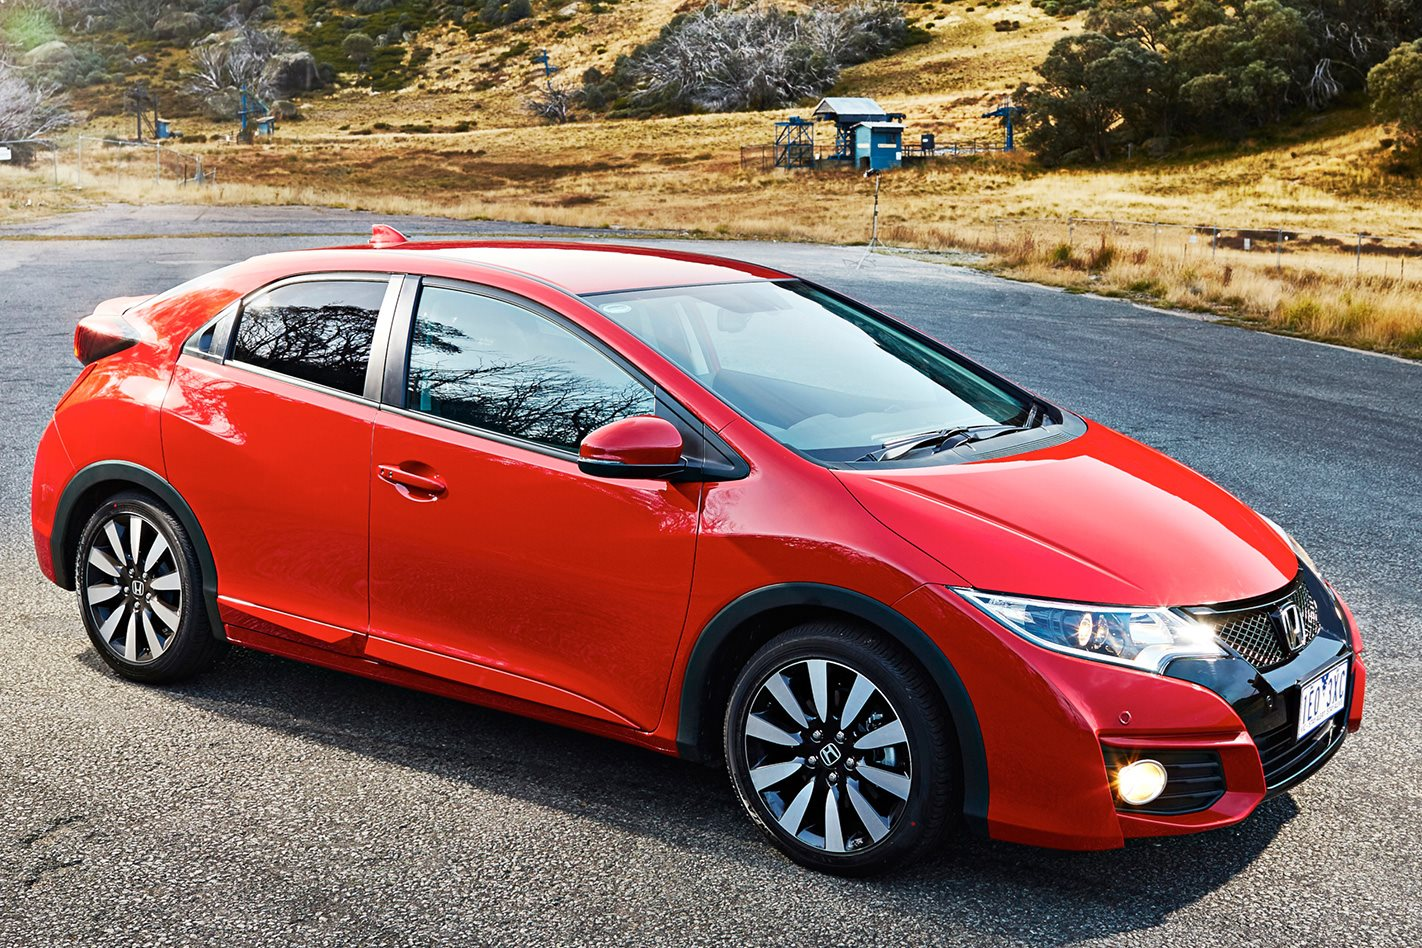 2015 honda civic hatch series ii review wheels. Black Bedroom Furniture Sets. Home Design Ideas